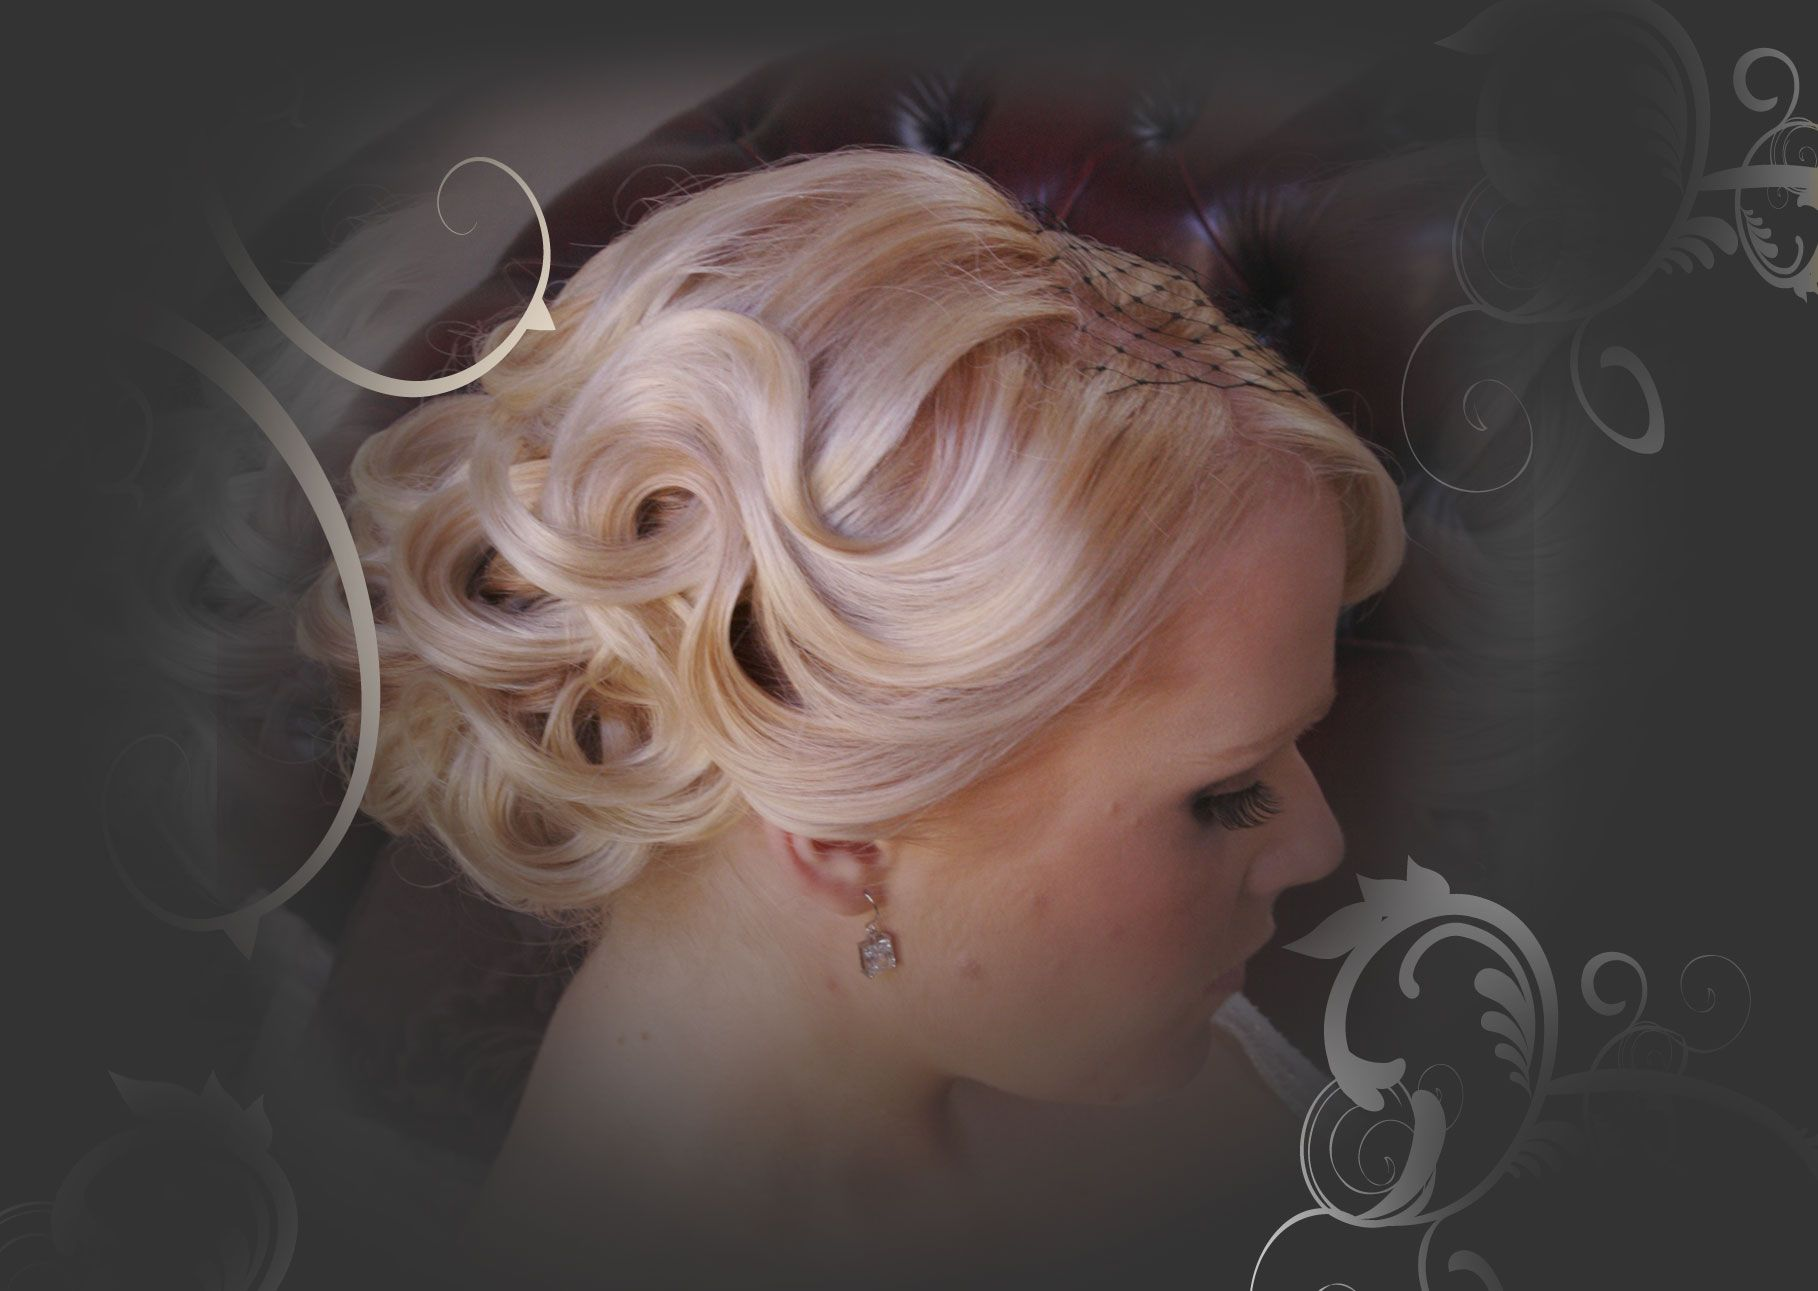 leading geelong hair stylist, hairdresser, make up artist